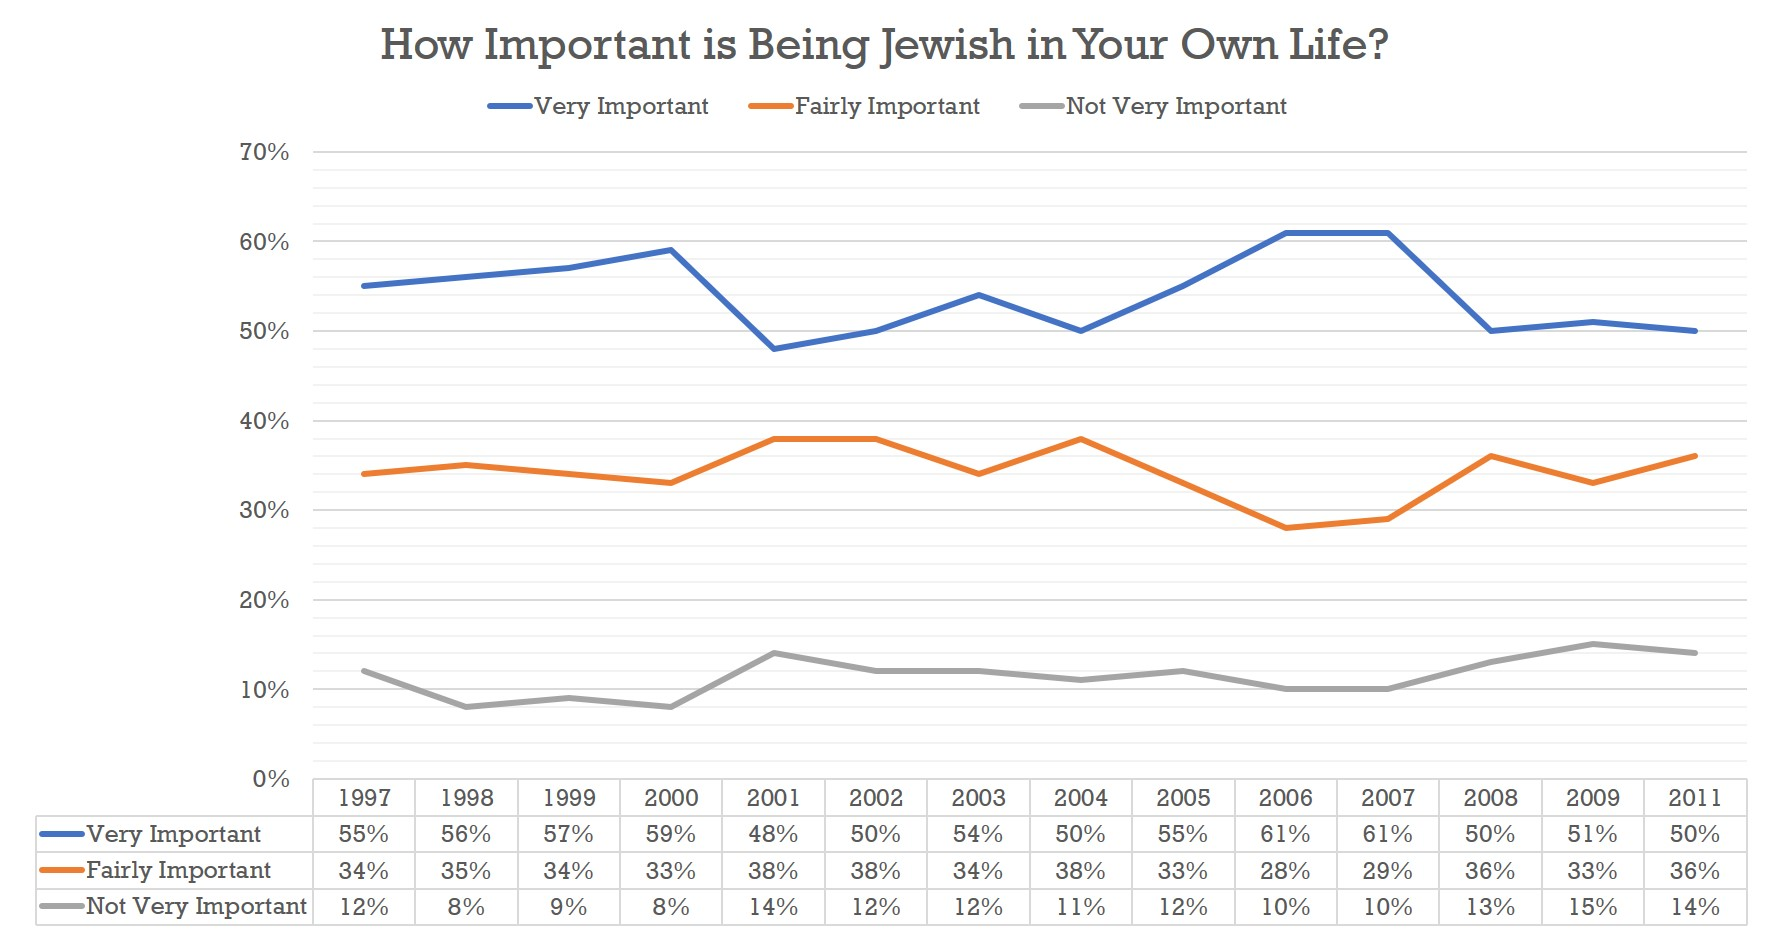 How Important is Being Jewish In Your Own Life